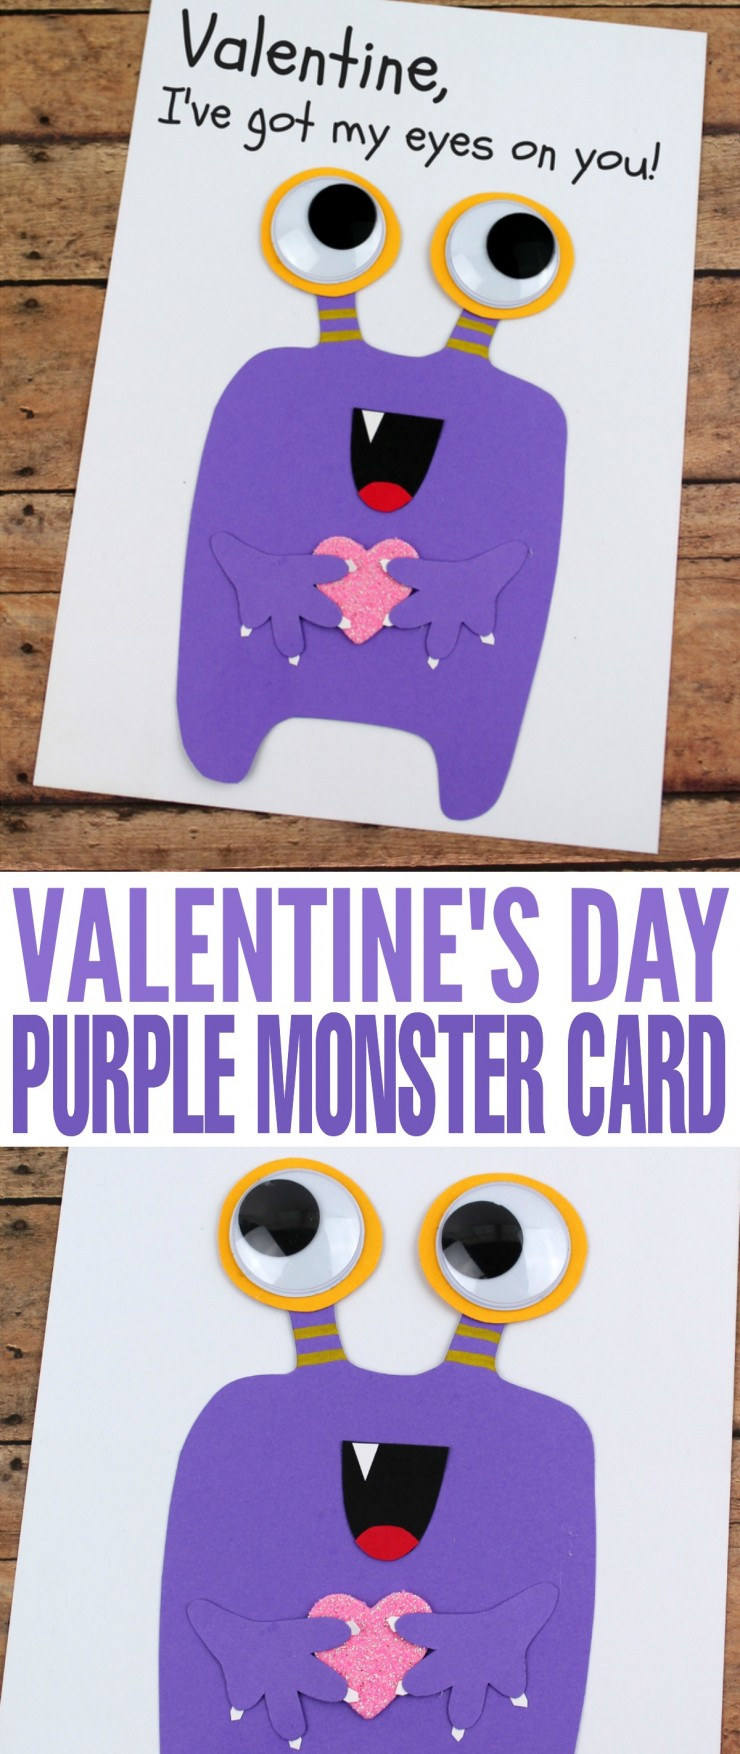 Valentine's Day is coming up and while it can be difficult to figure out how to treat your sweetheart, a hand made card is always going to be a hit. This DIY Valentine's Day Purp;e Monster Card is the perfect way to show your Valentine you think they are a scream!